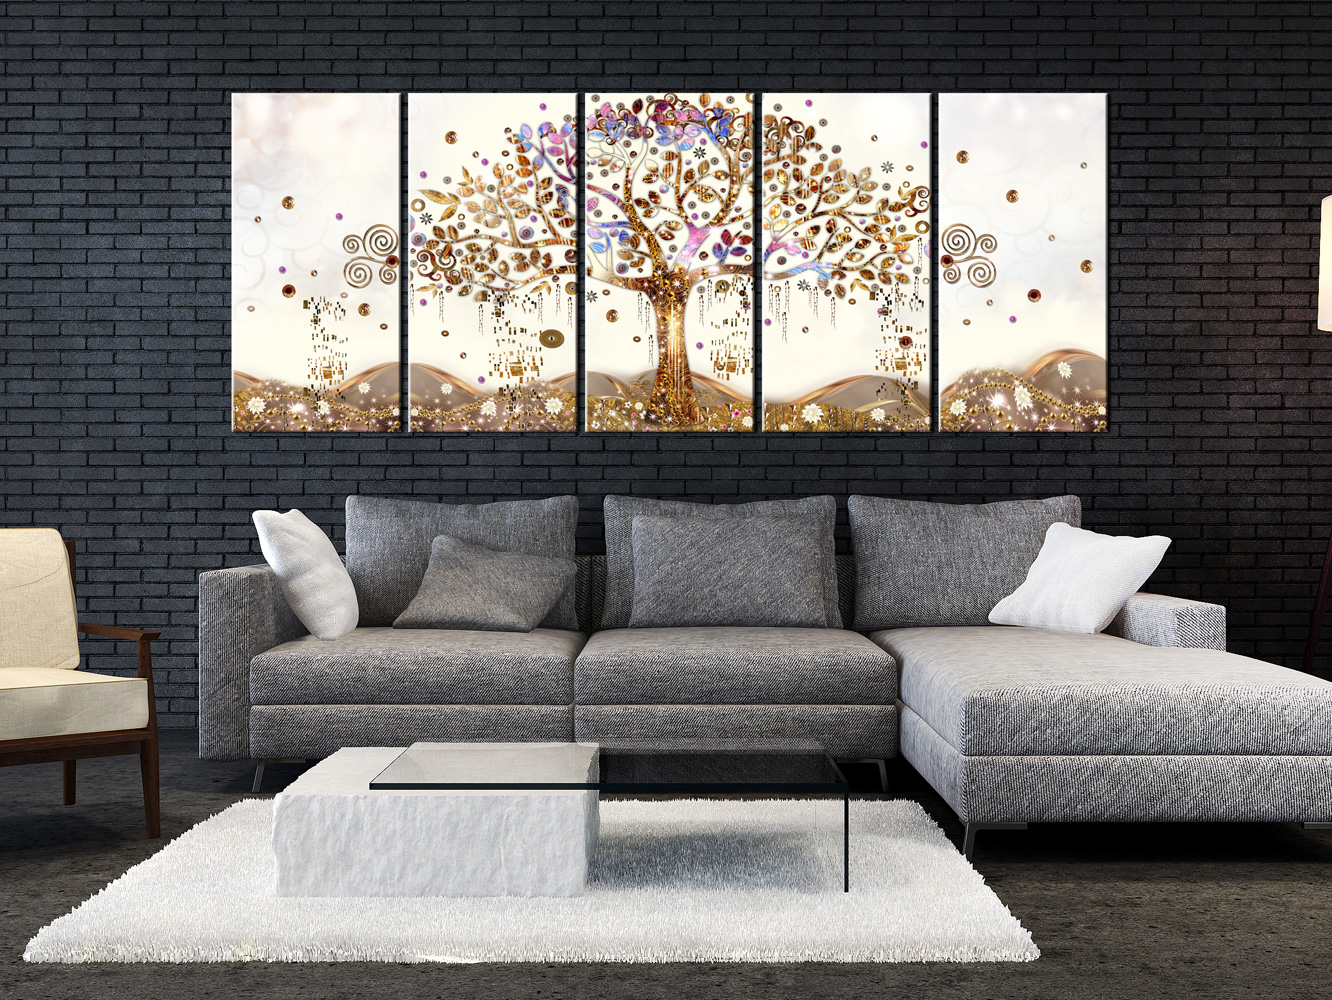 wandbilder xxl baum des lebens klimt leinwand bilder wohnzimmer l a 0009 b n ebay. Black Bedroom Furniture Sets. Home Design Ideas